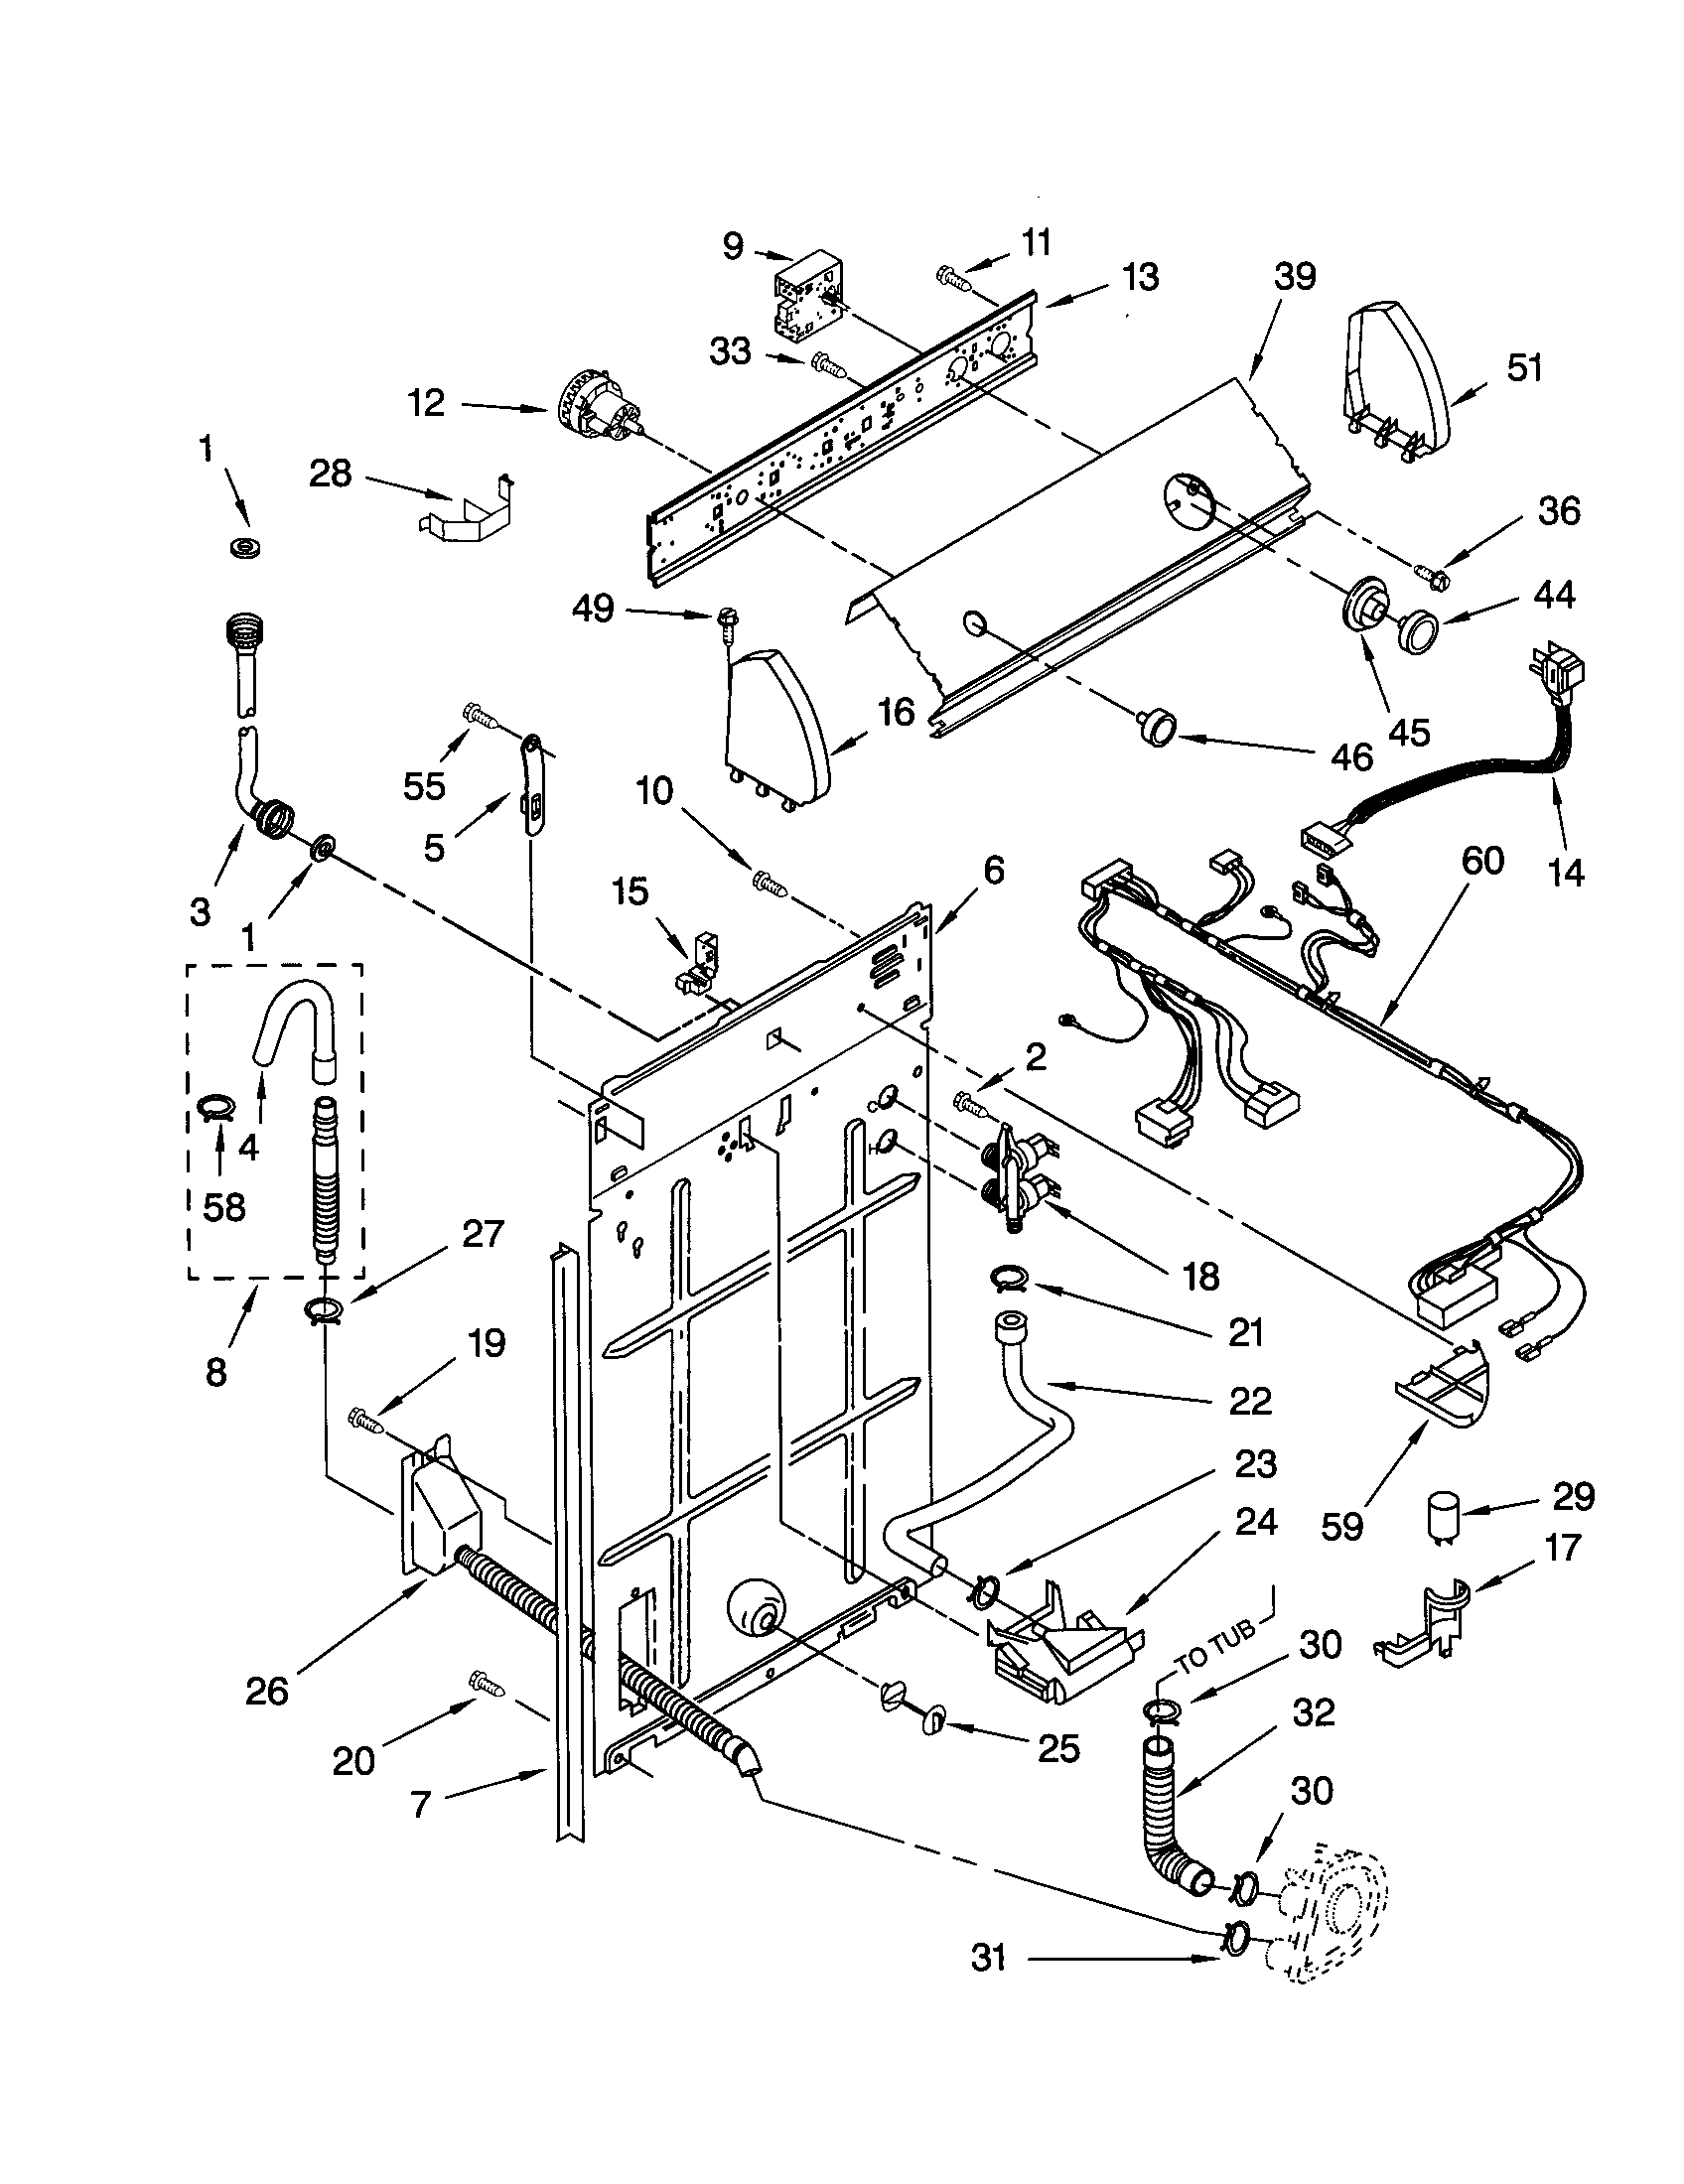 CONTROLS AND REAR PANEL Diagram & Parts List for Model